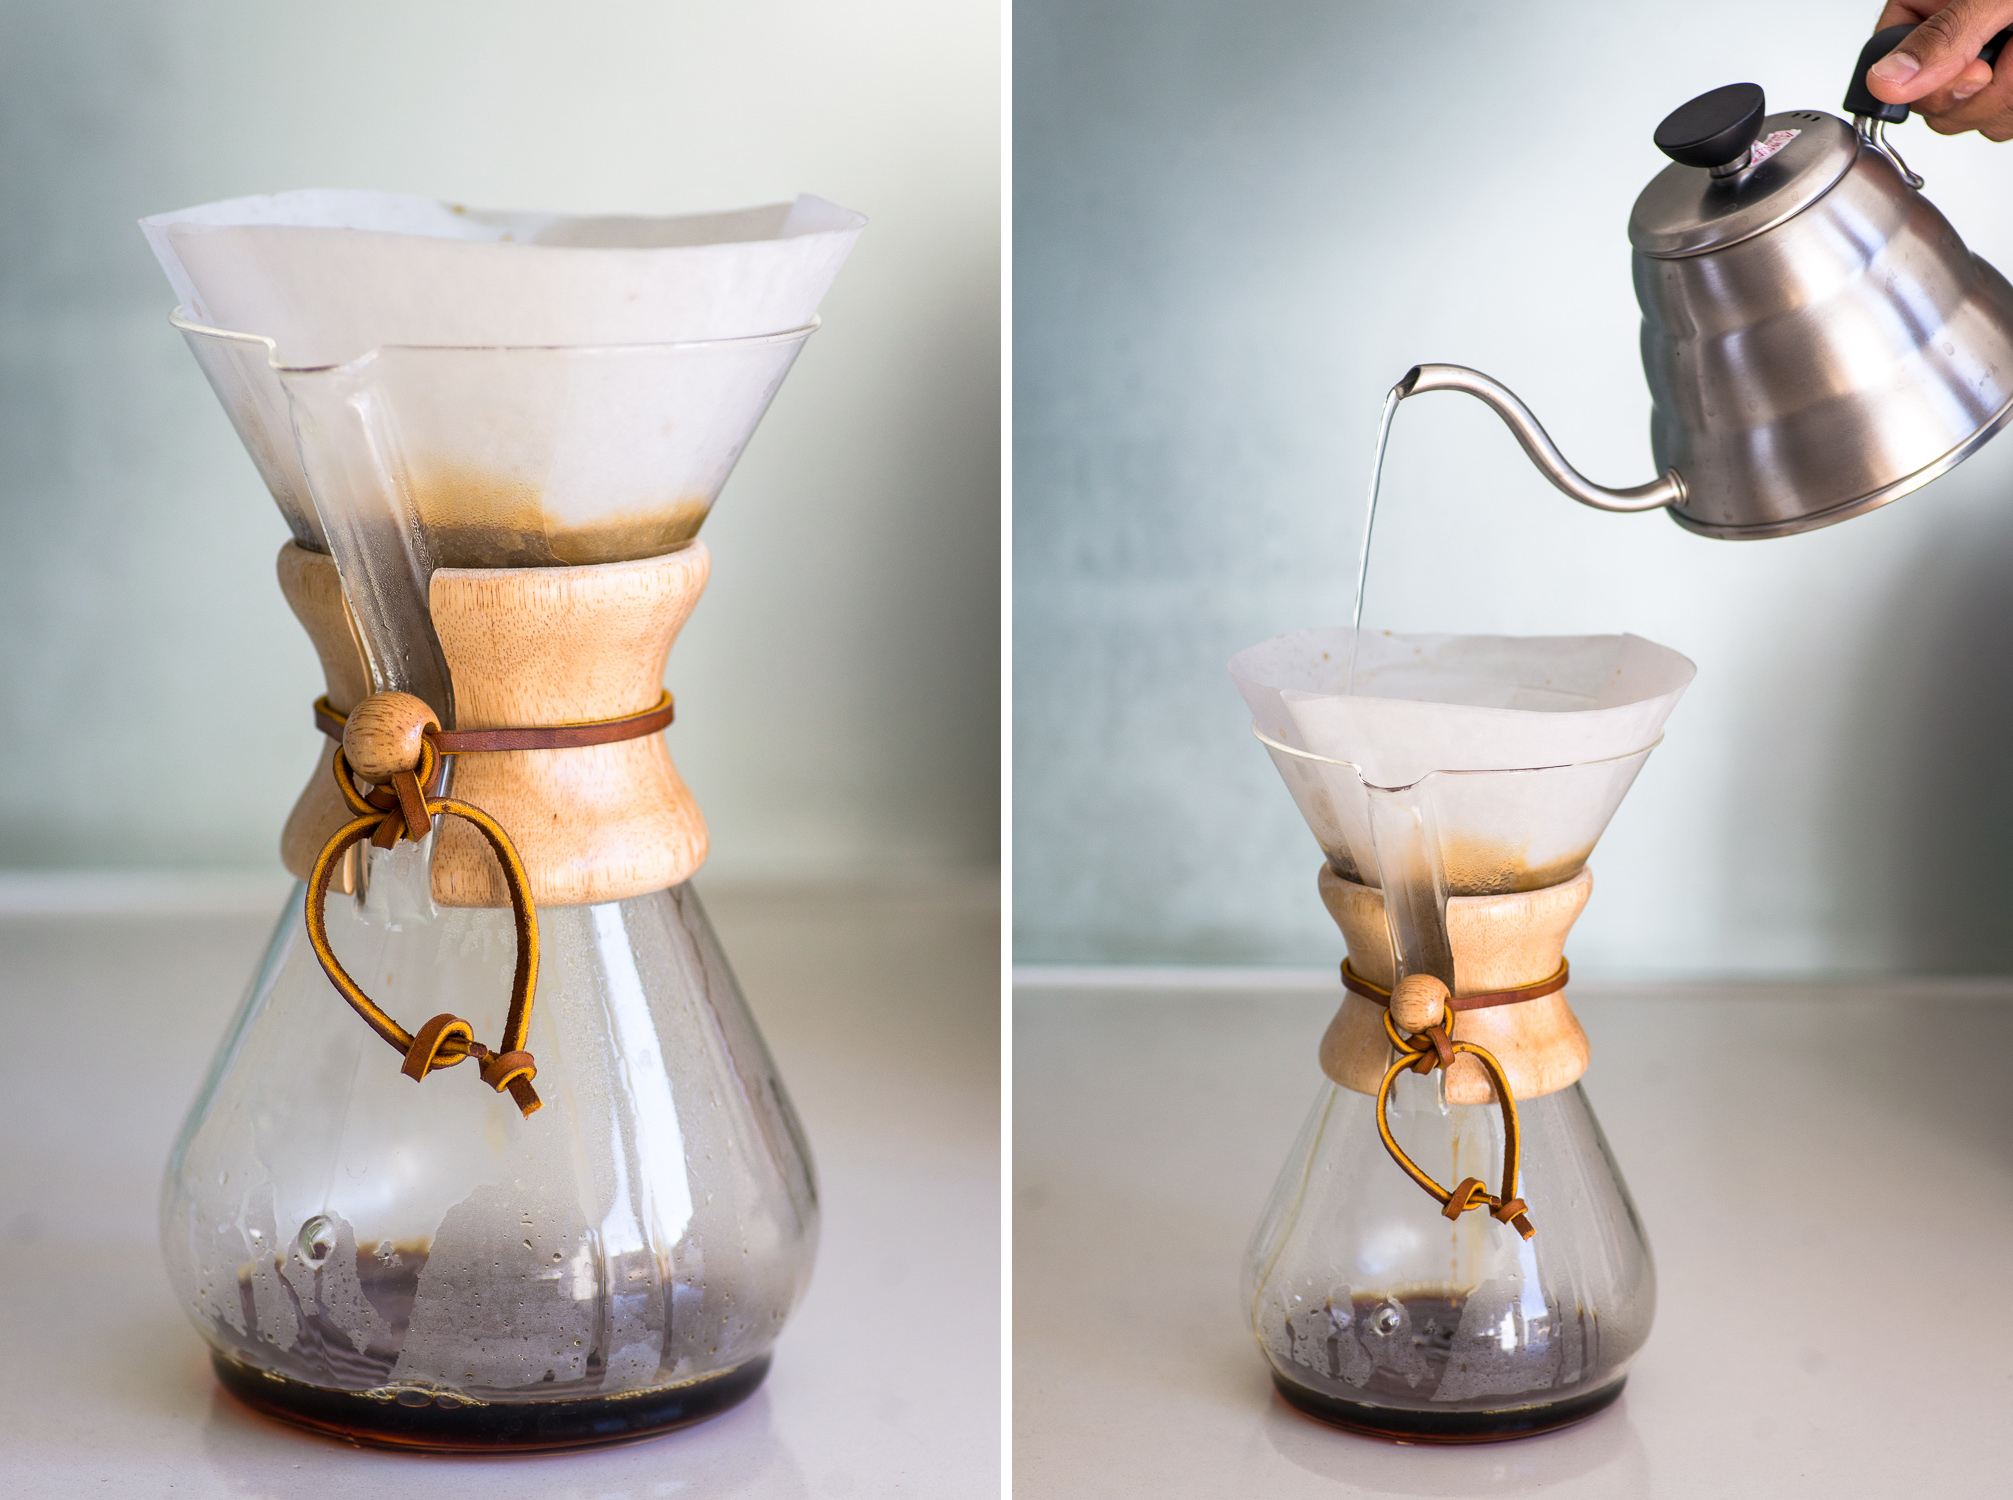 Pouring water from a Hario kettle into a Chemex to brew coffee